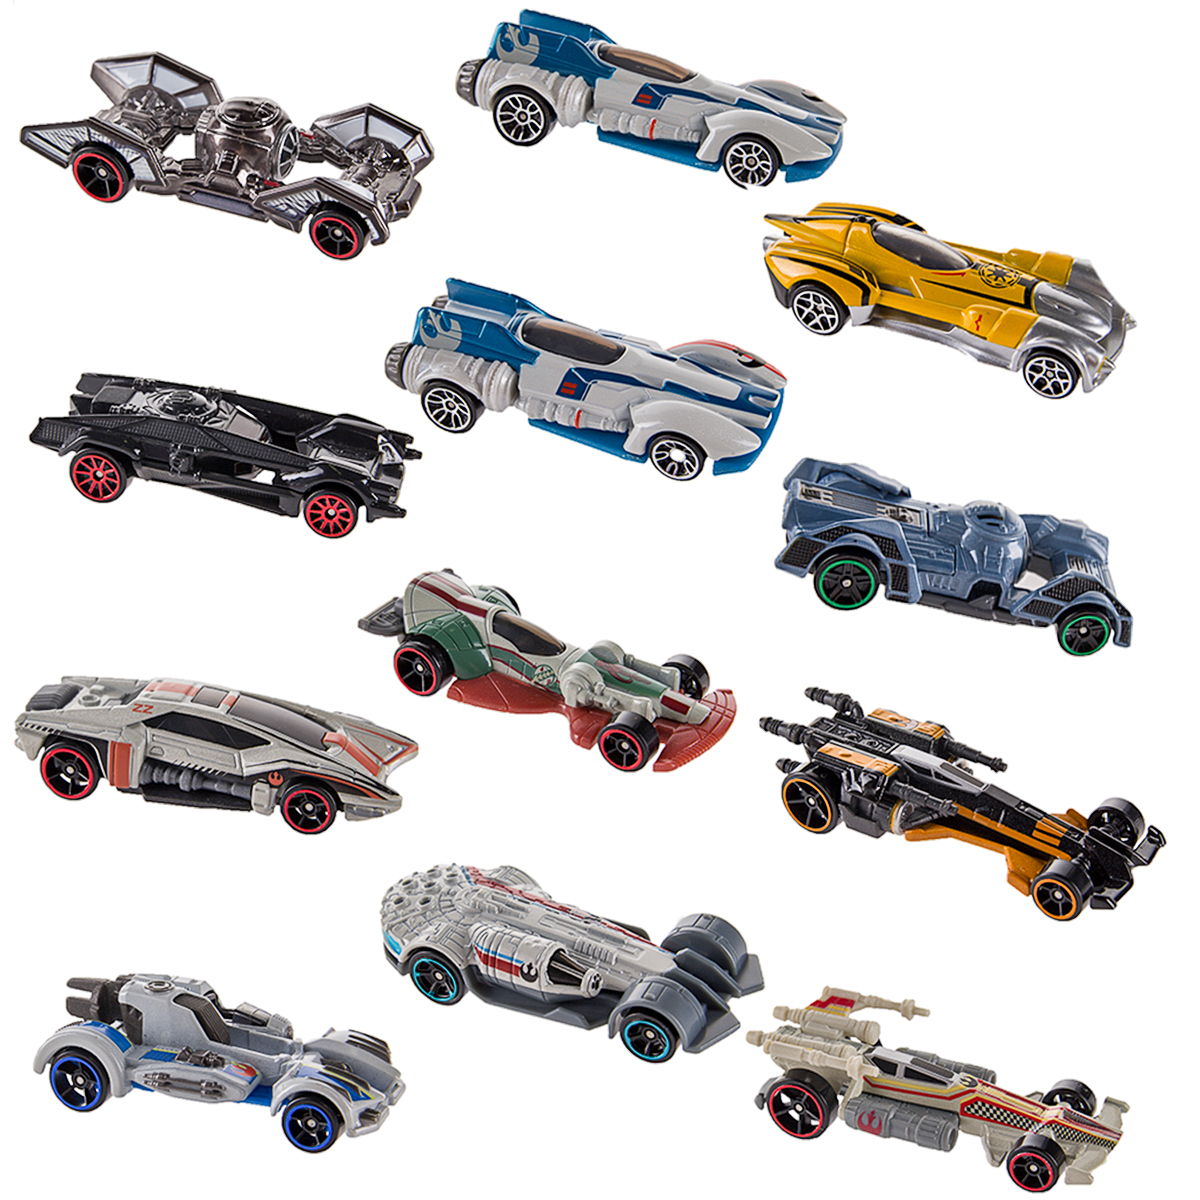 Hot Wheels (Set of 12) Disney Star Wars Carships Toys Set Starship Inspired Character Cars... by